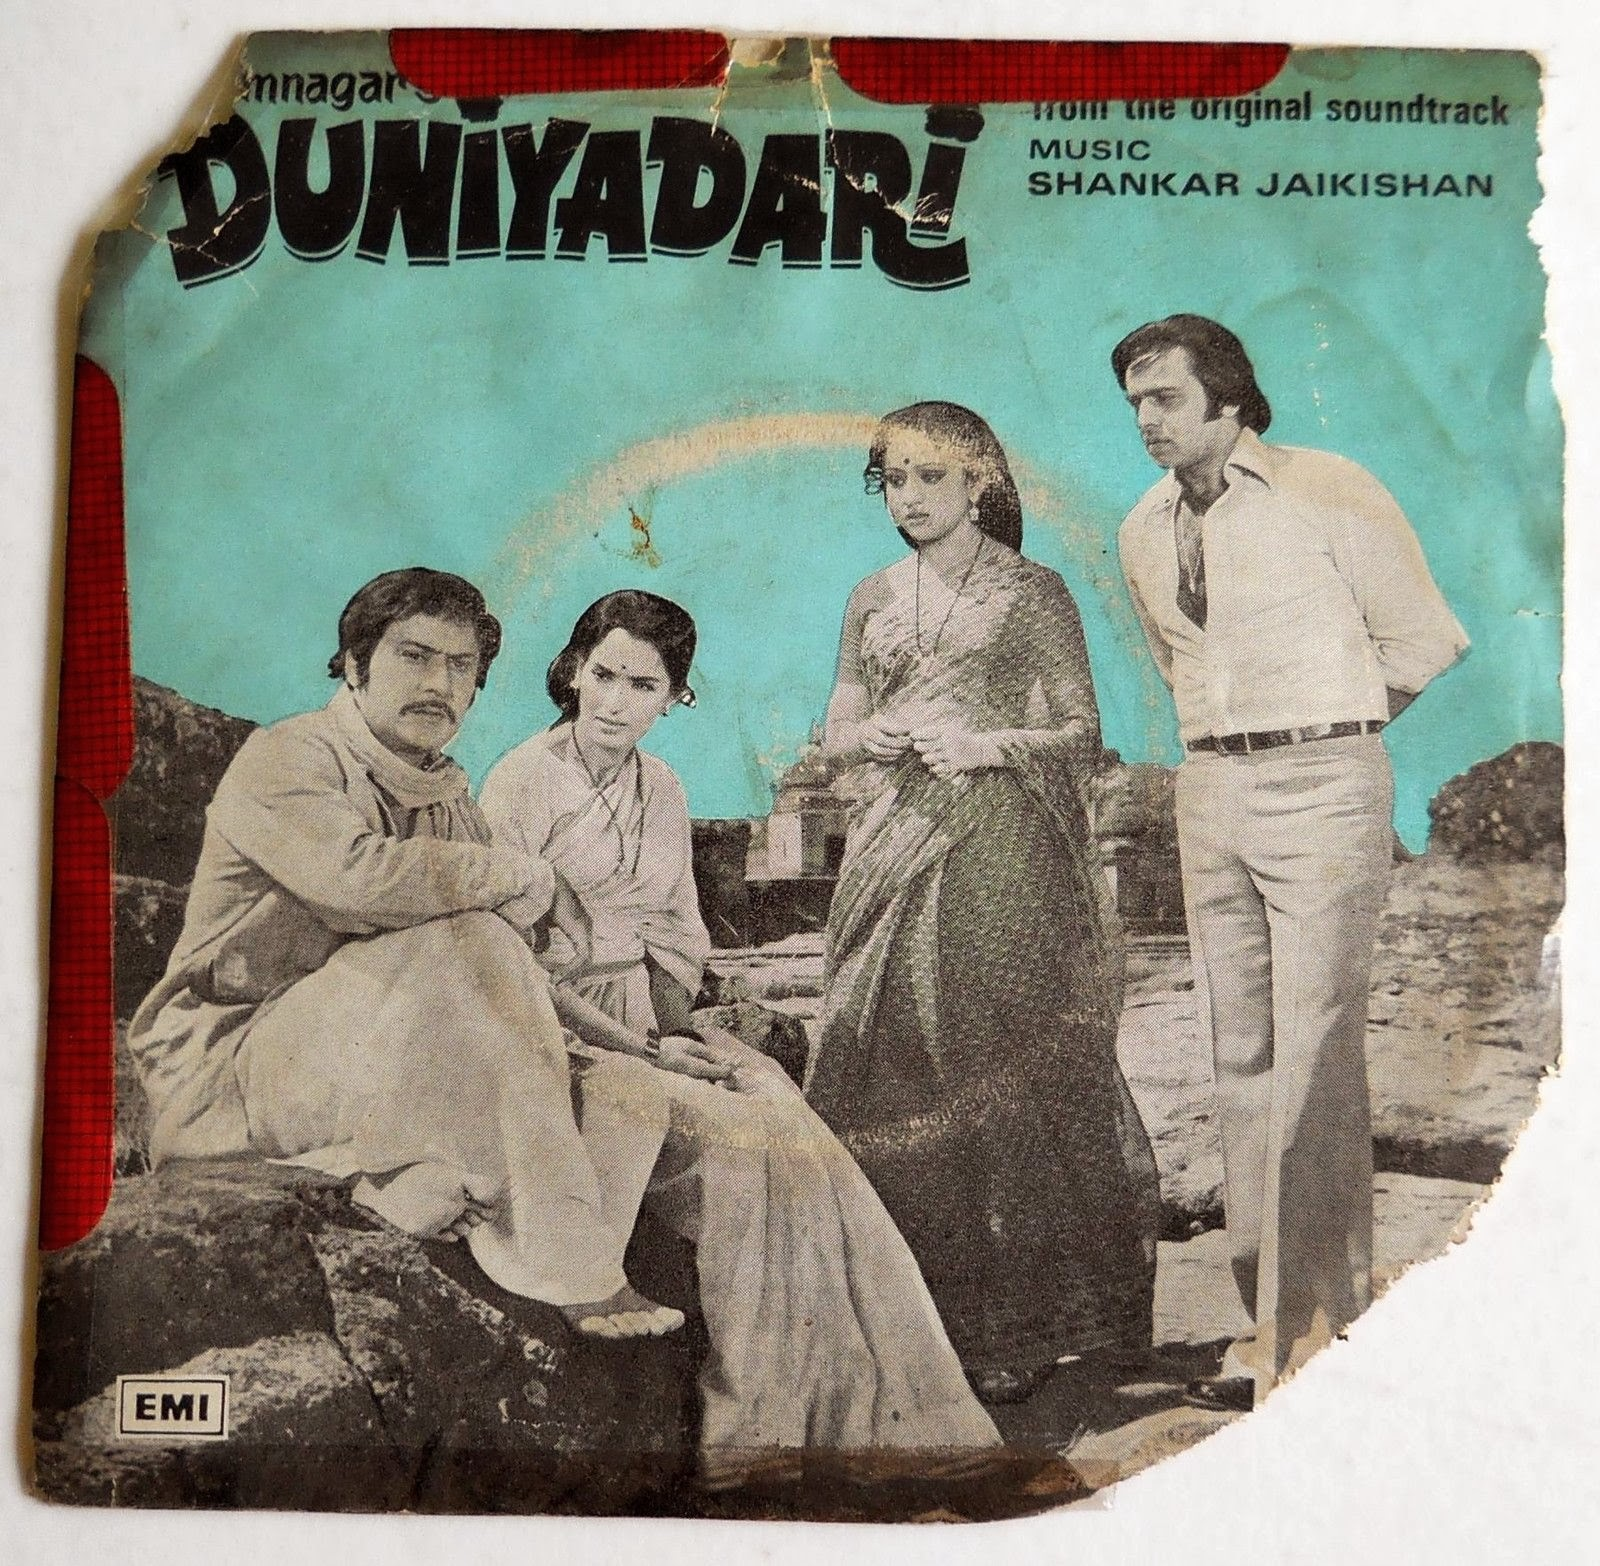 Bollywood Hindi Movie Record Covers Part 5 Old Indian